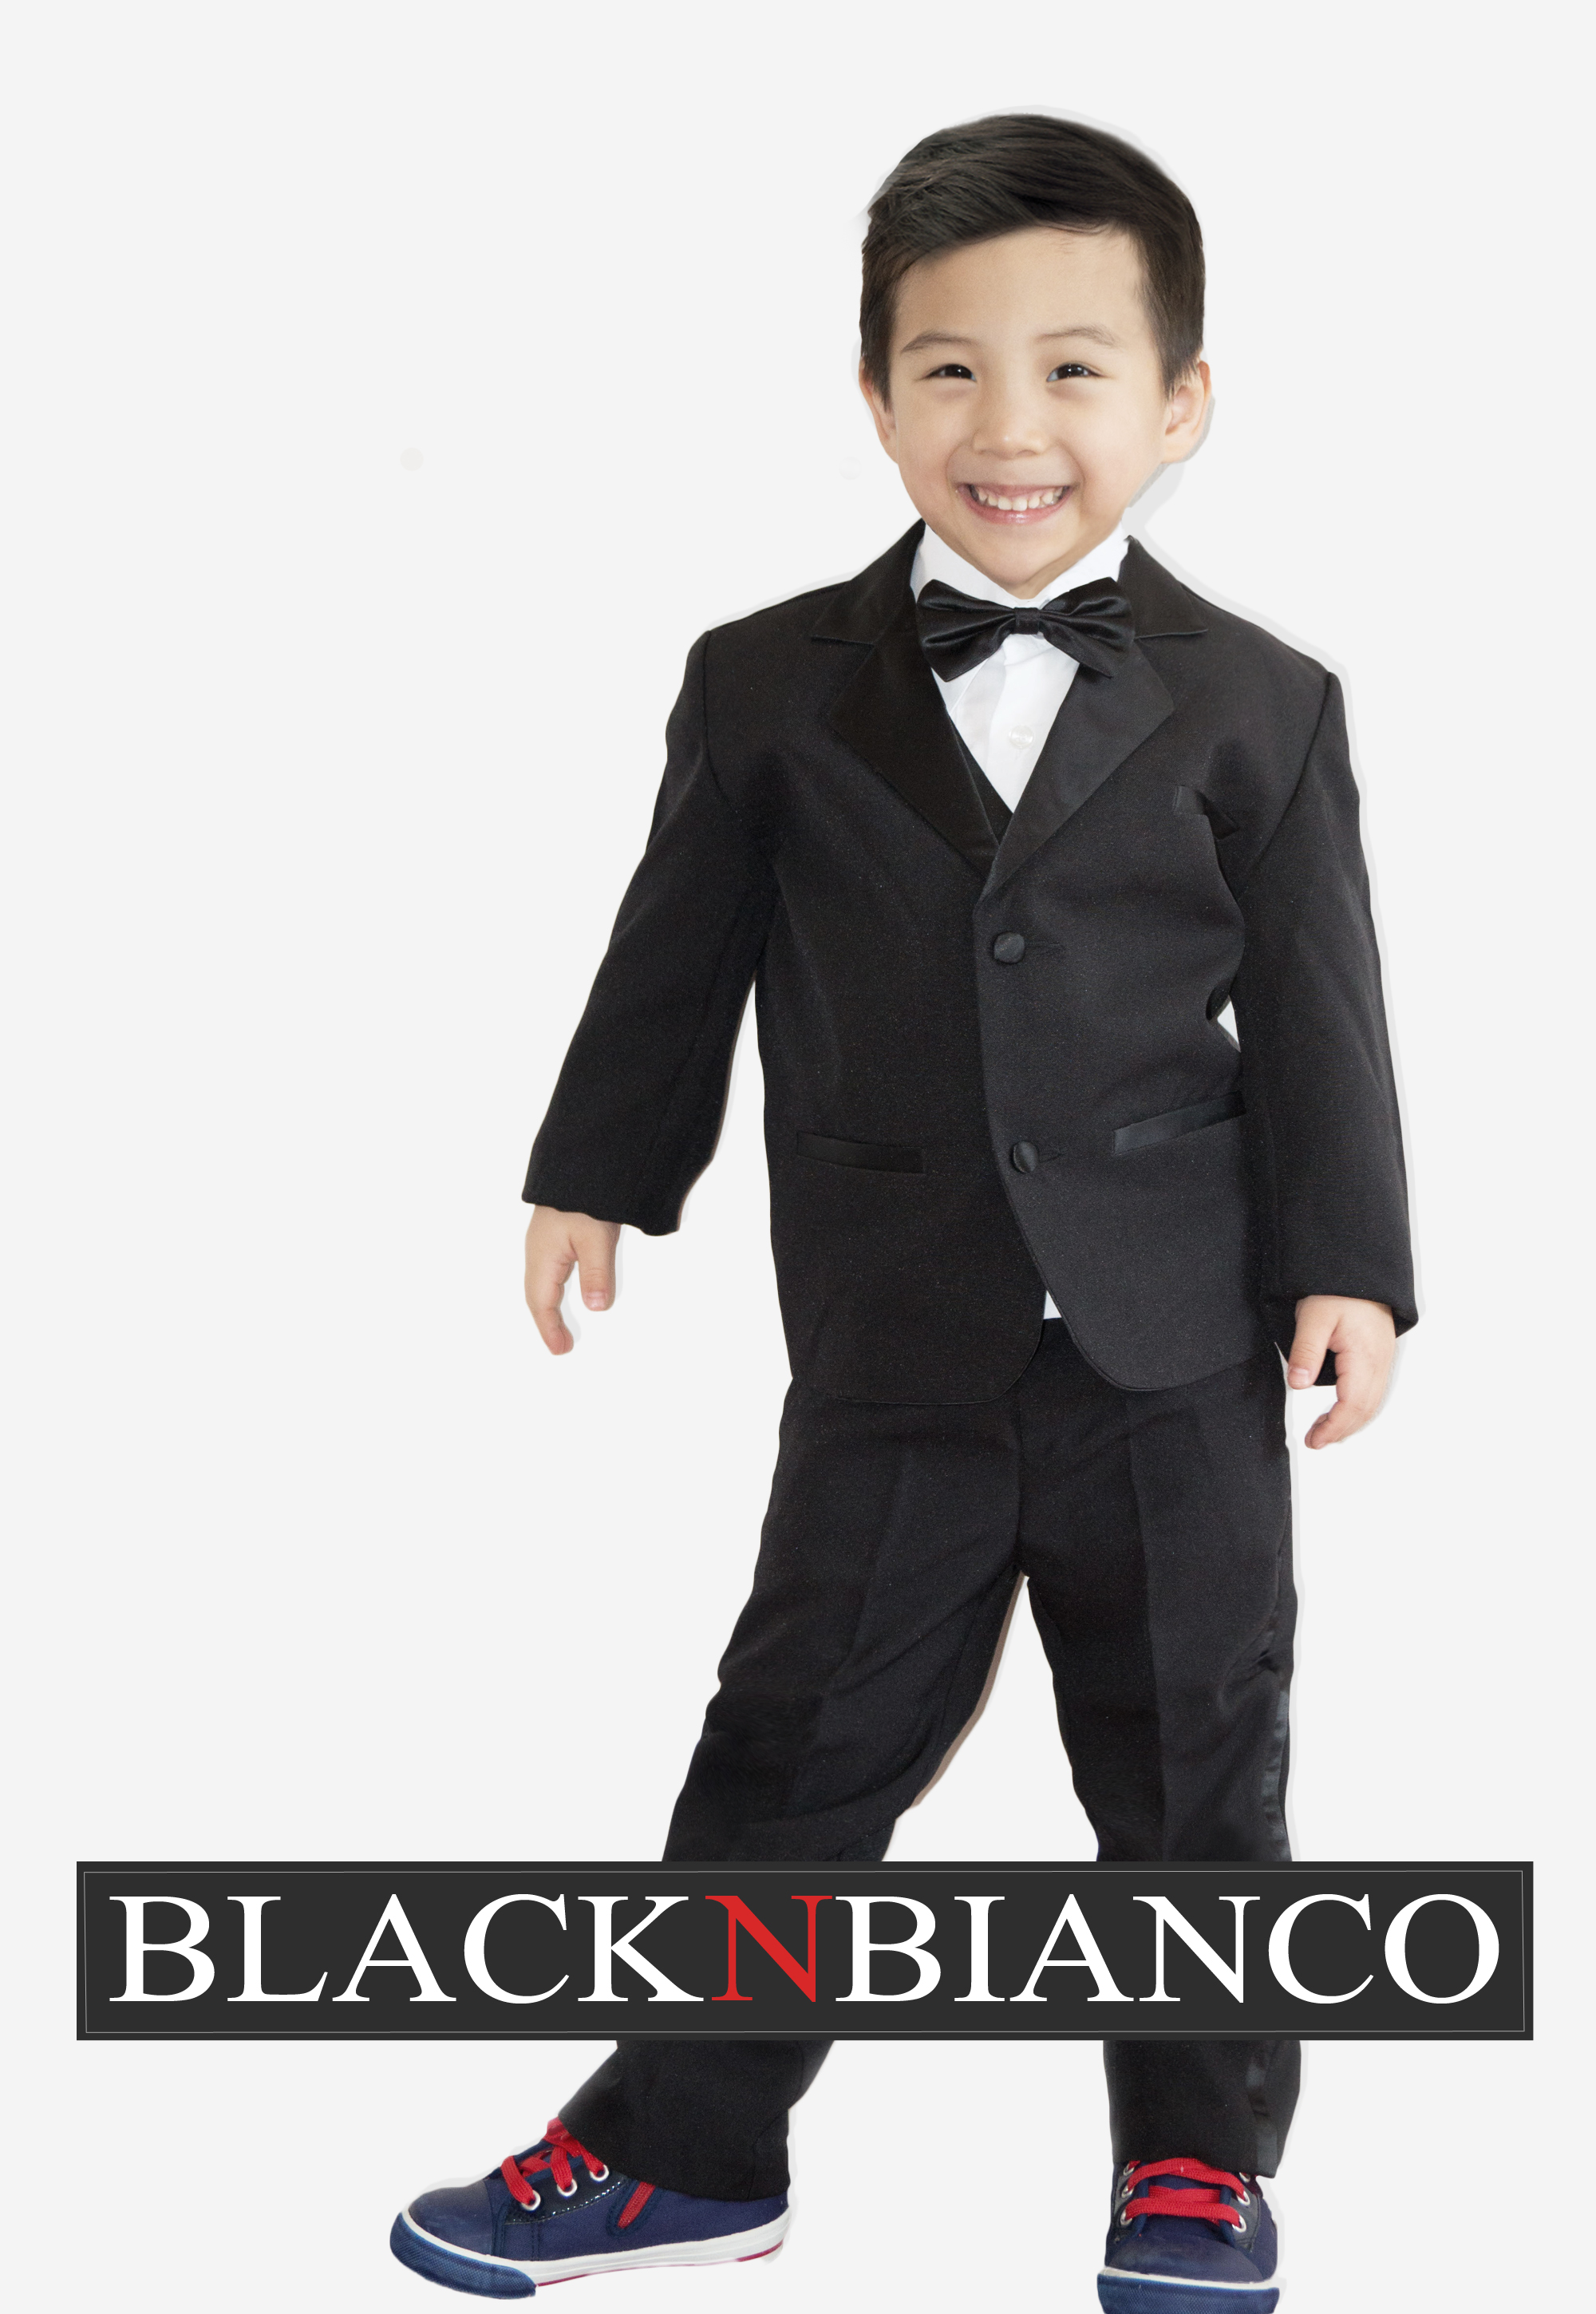 toddler tuxedos and suits Find this Pin and more on Good Things by Veronica Jett. Tinytux carries a vast selection of boys dress shirts in over 15 colors and sizes as a well as all styles of boys tuxedo shirts for weddings, prom, dance teams.